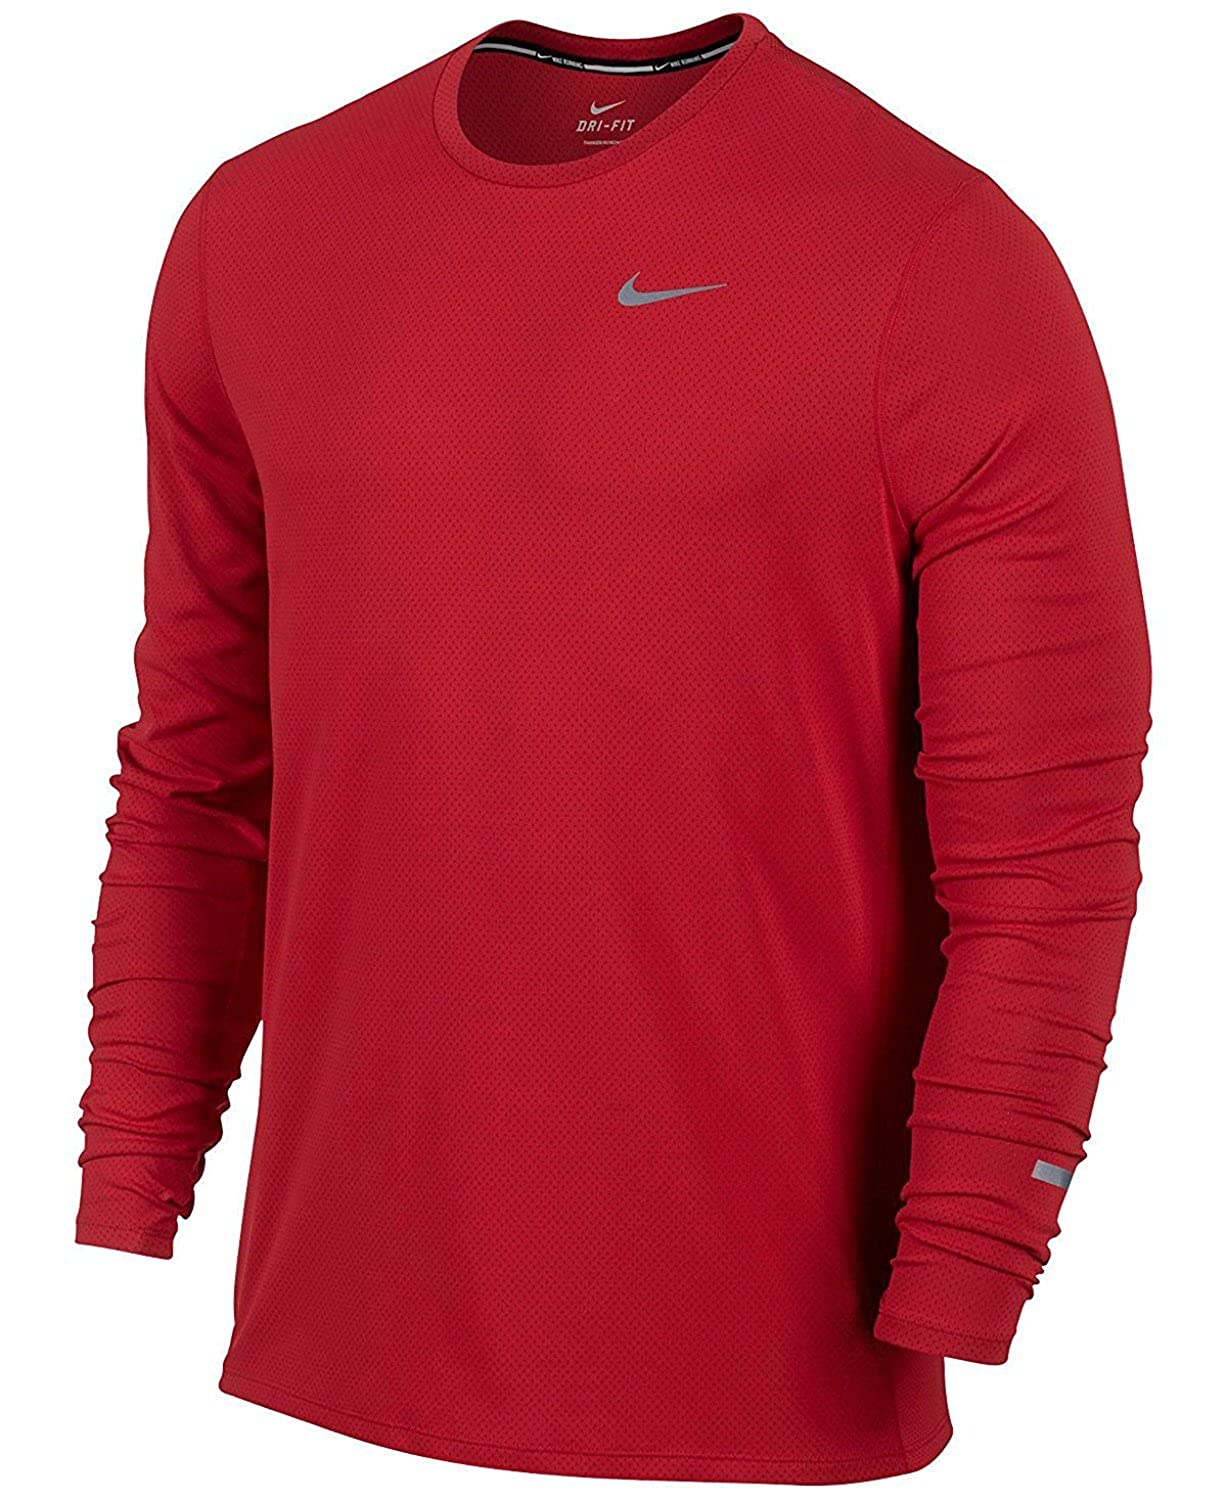 d1da0bf25 Nike Long Sleeve Shirts With Thumb Holes - Aztec Stone and Reclamations